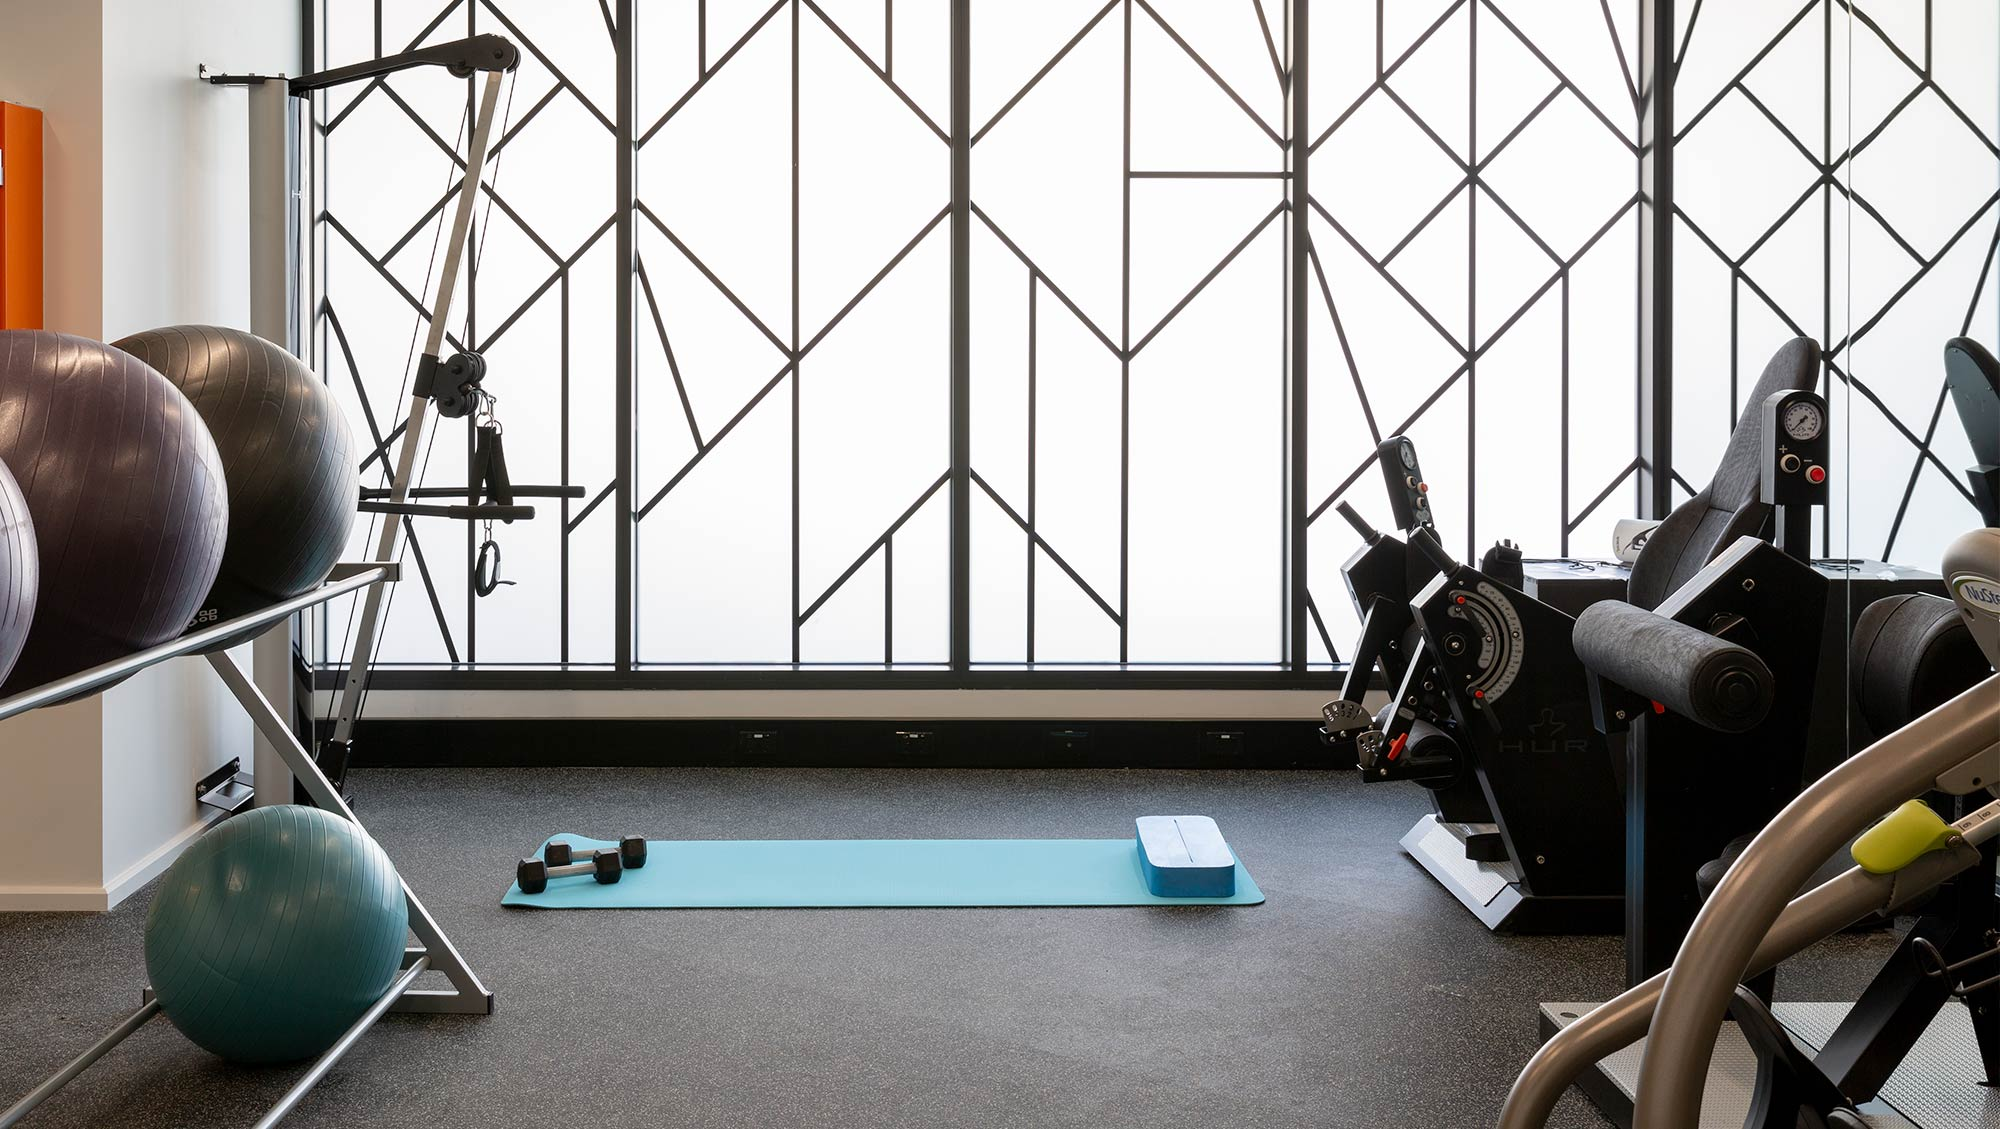 Gym at Baptcare The Orchards Templestowe